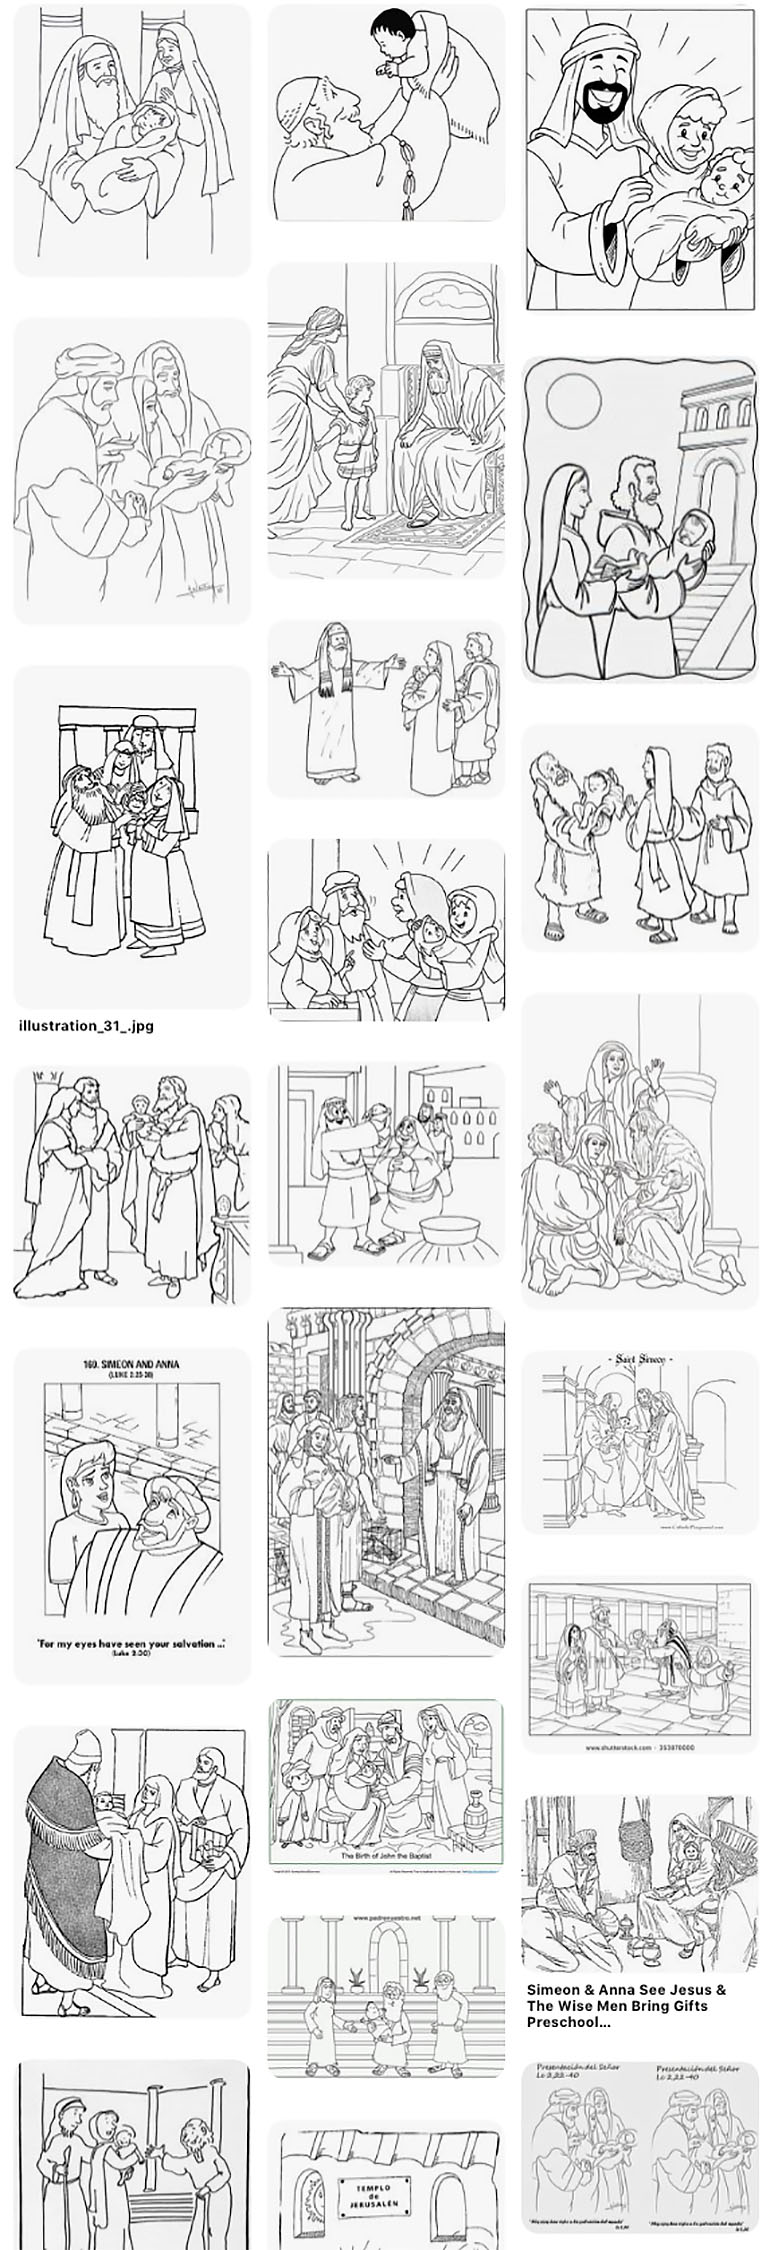 Saint Mary Magdalen Coloring Page ❤+❤ Olive Garden Jesus ... | 2250x770